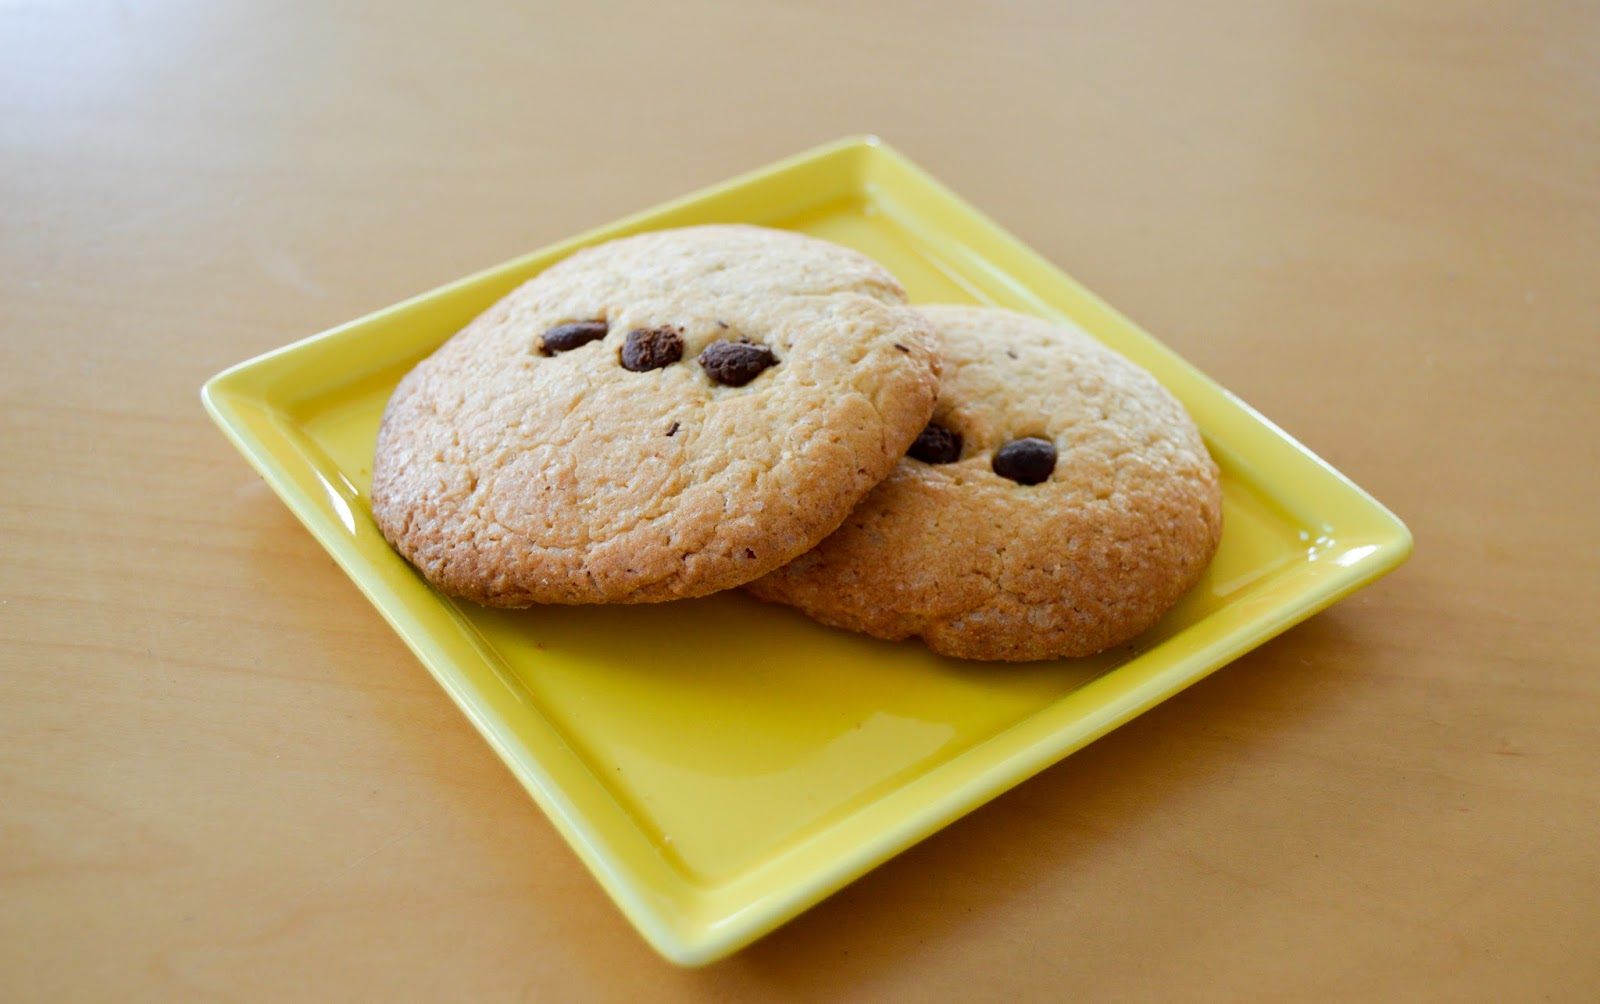 Chocolate Chip Cookies - Free Stock Photos - Free Images - Free Wallpapers